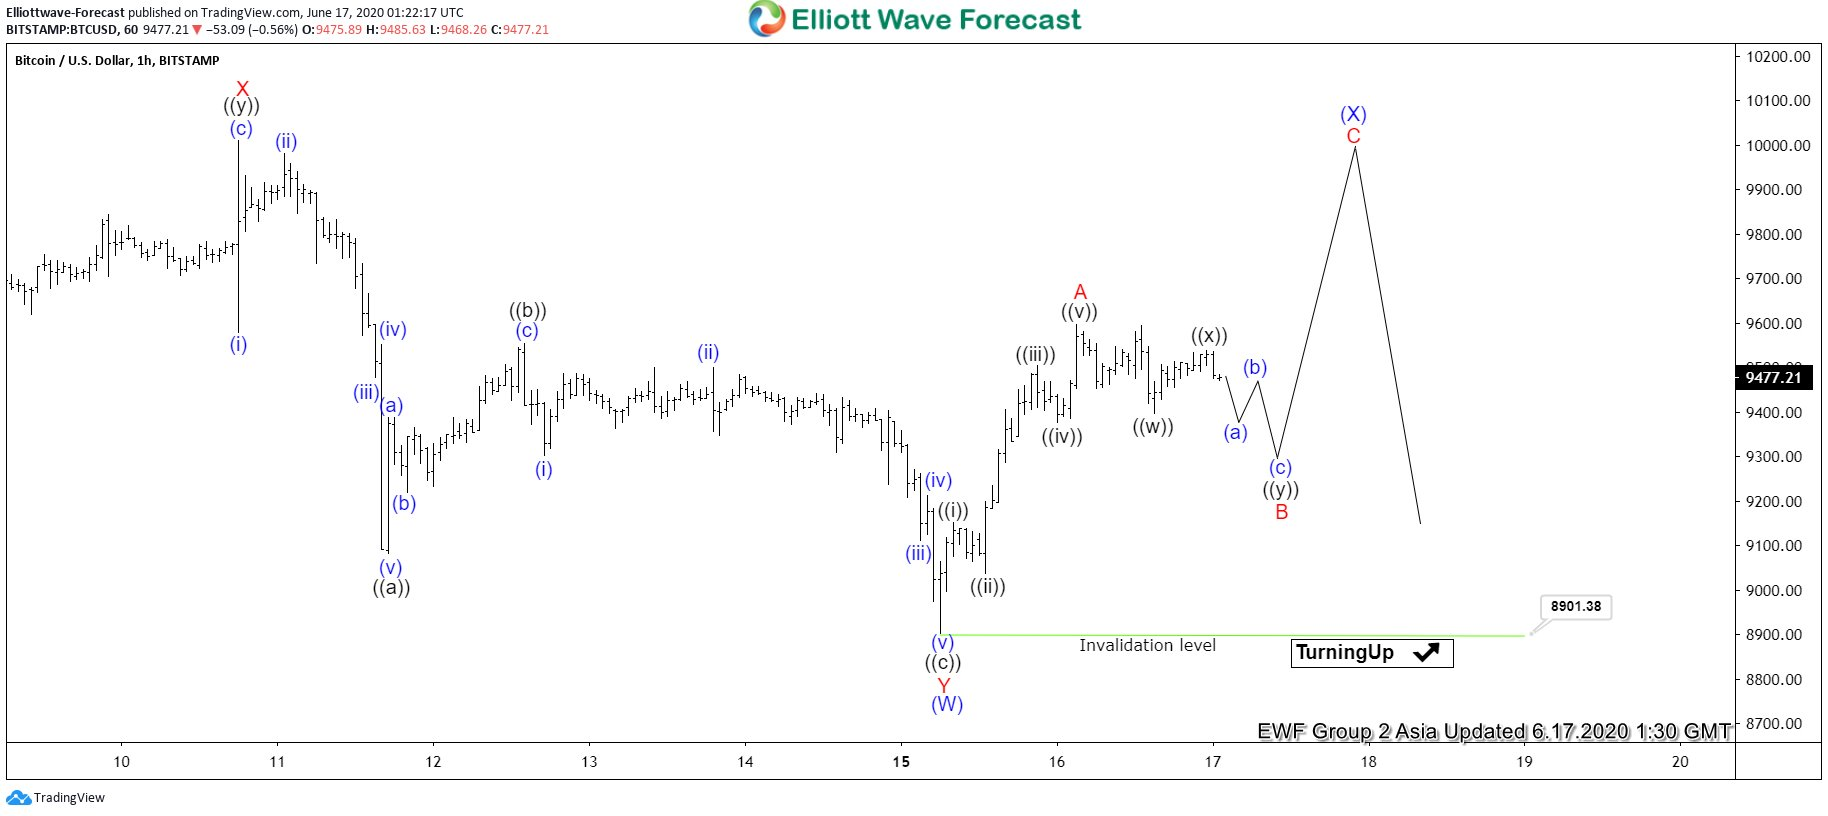 Elliott Wave View: Bitcoin shows short term impulse up